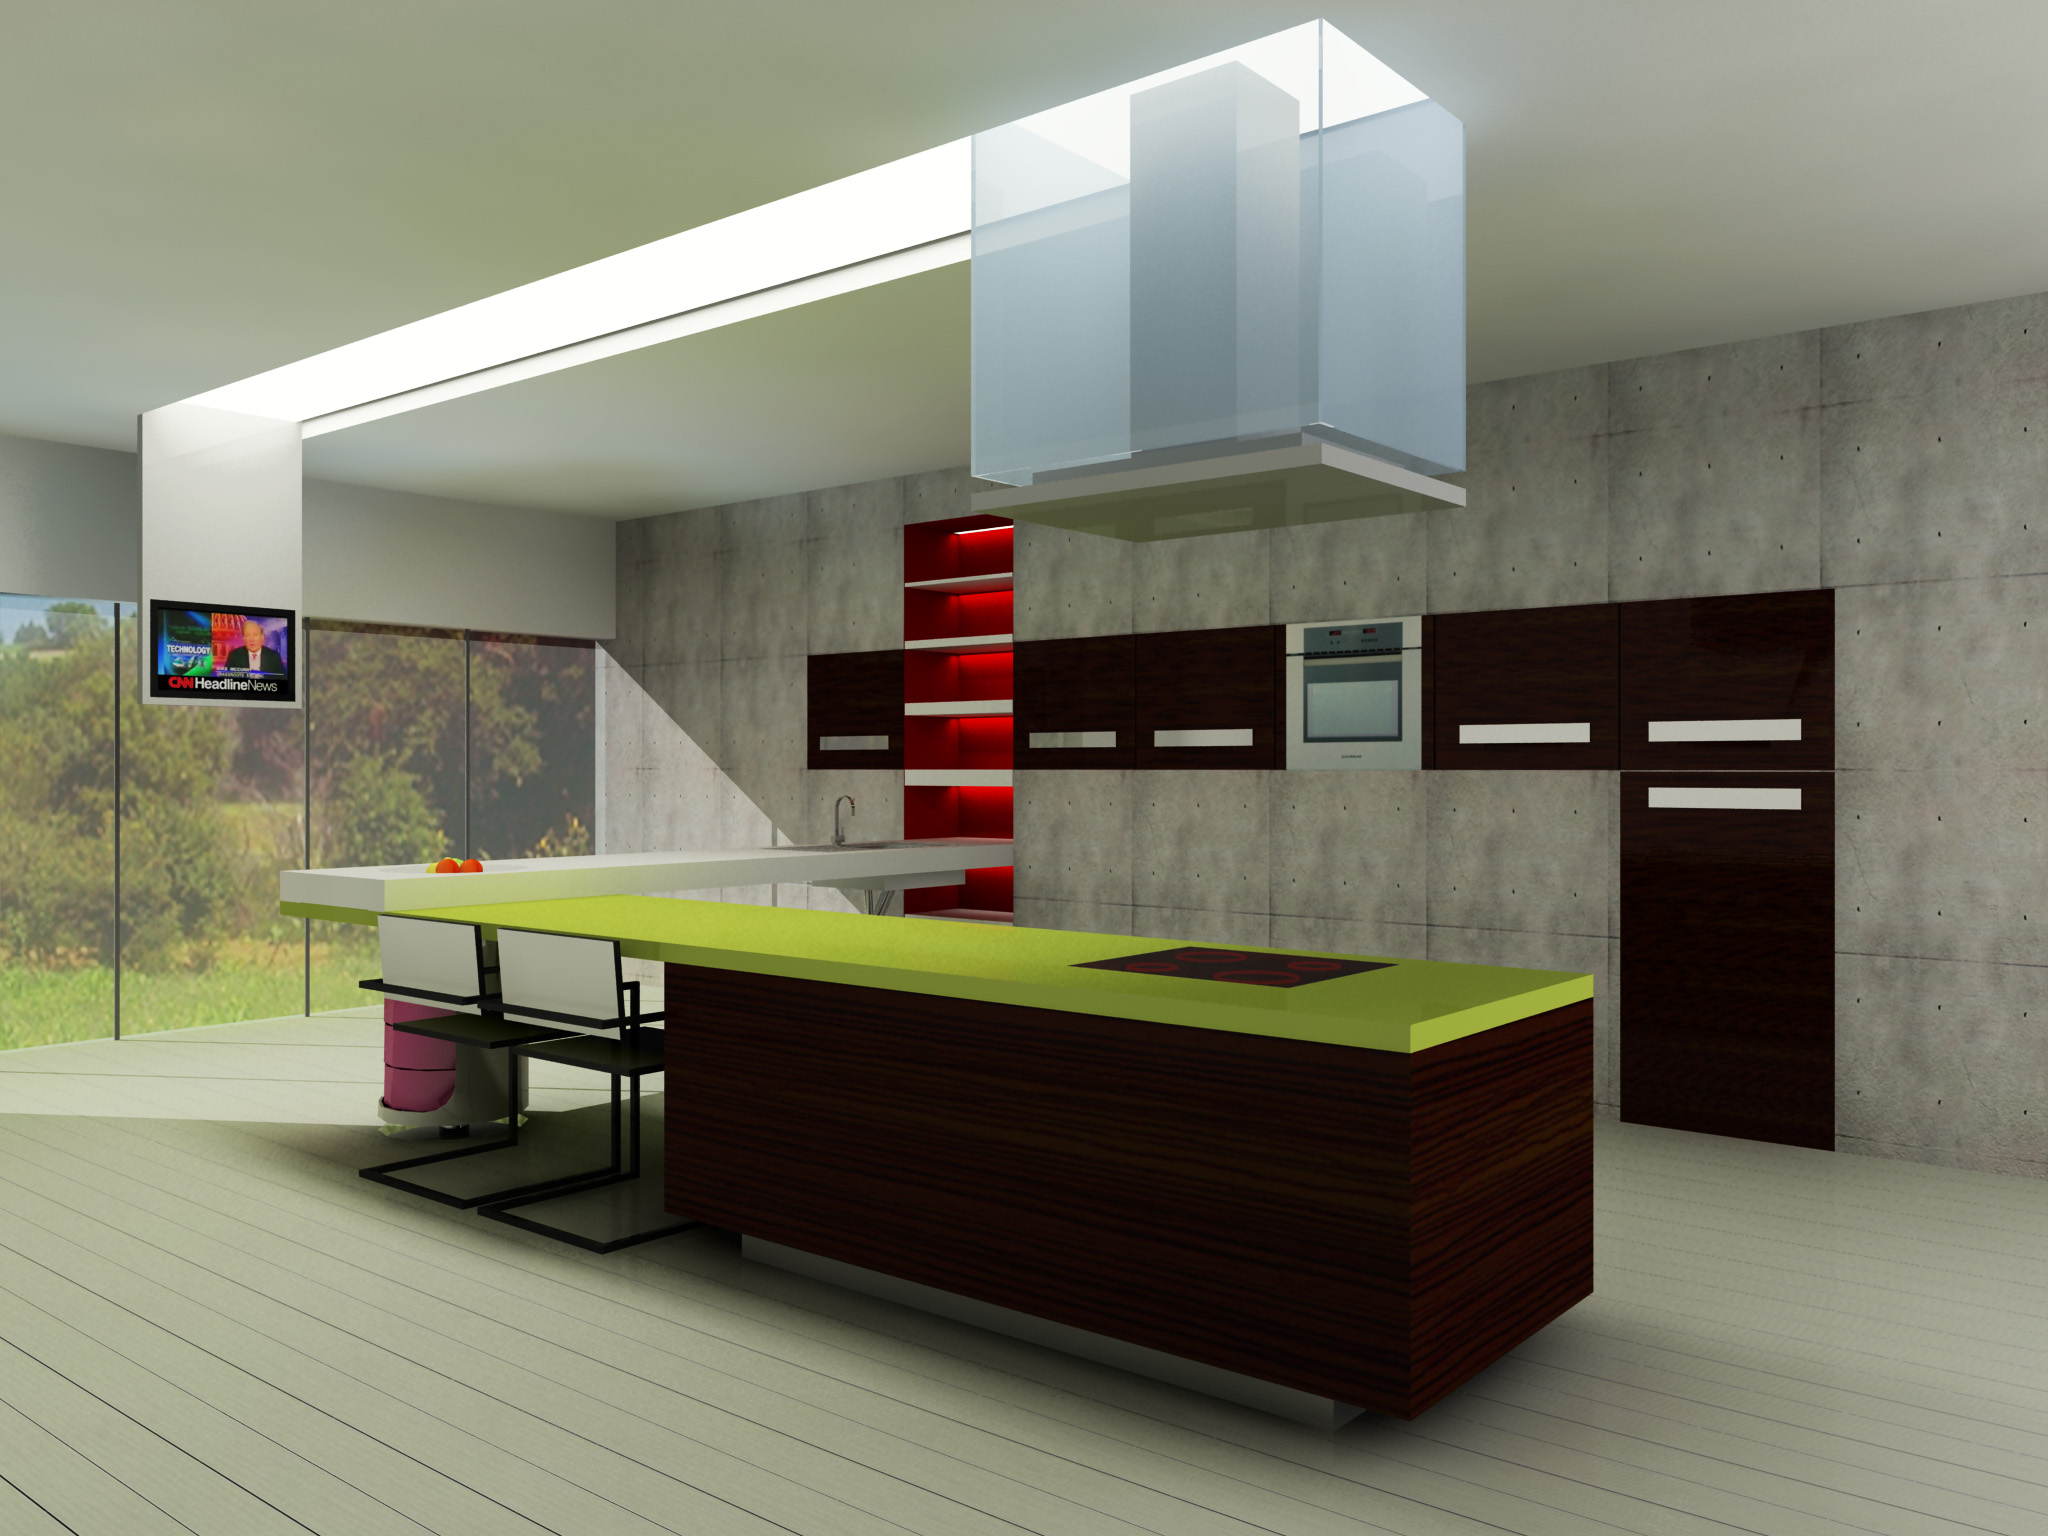 Kitchen Design Competition Silverline Kitchen Design Competition 2Nd Prizeselami Yilmaz .